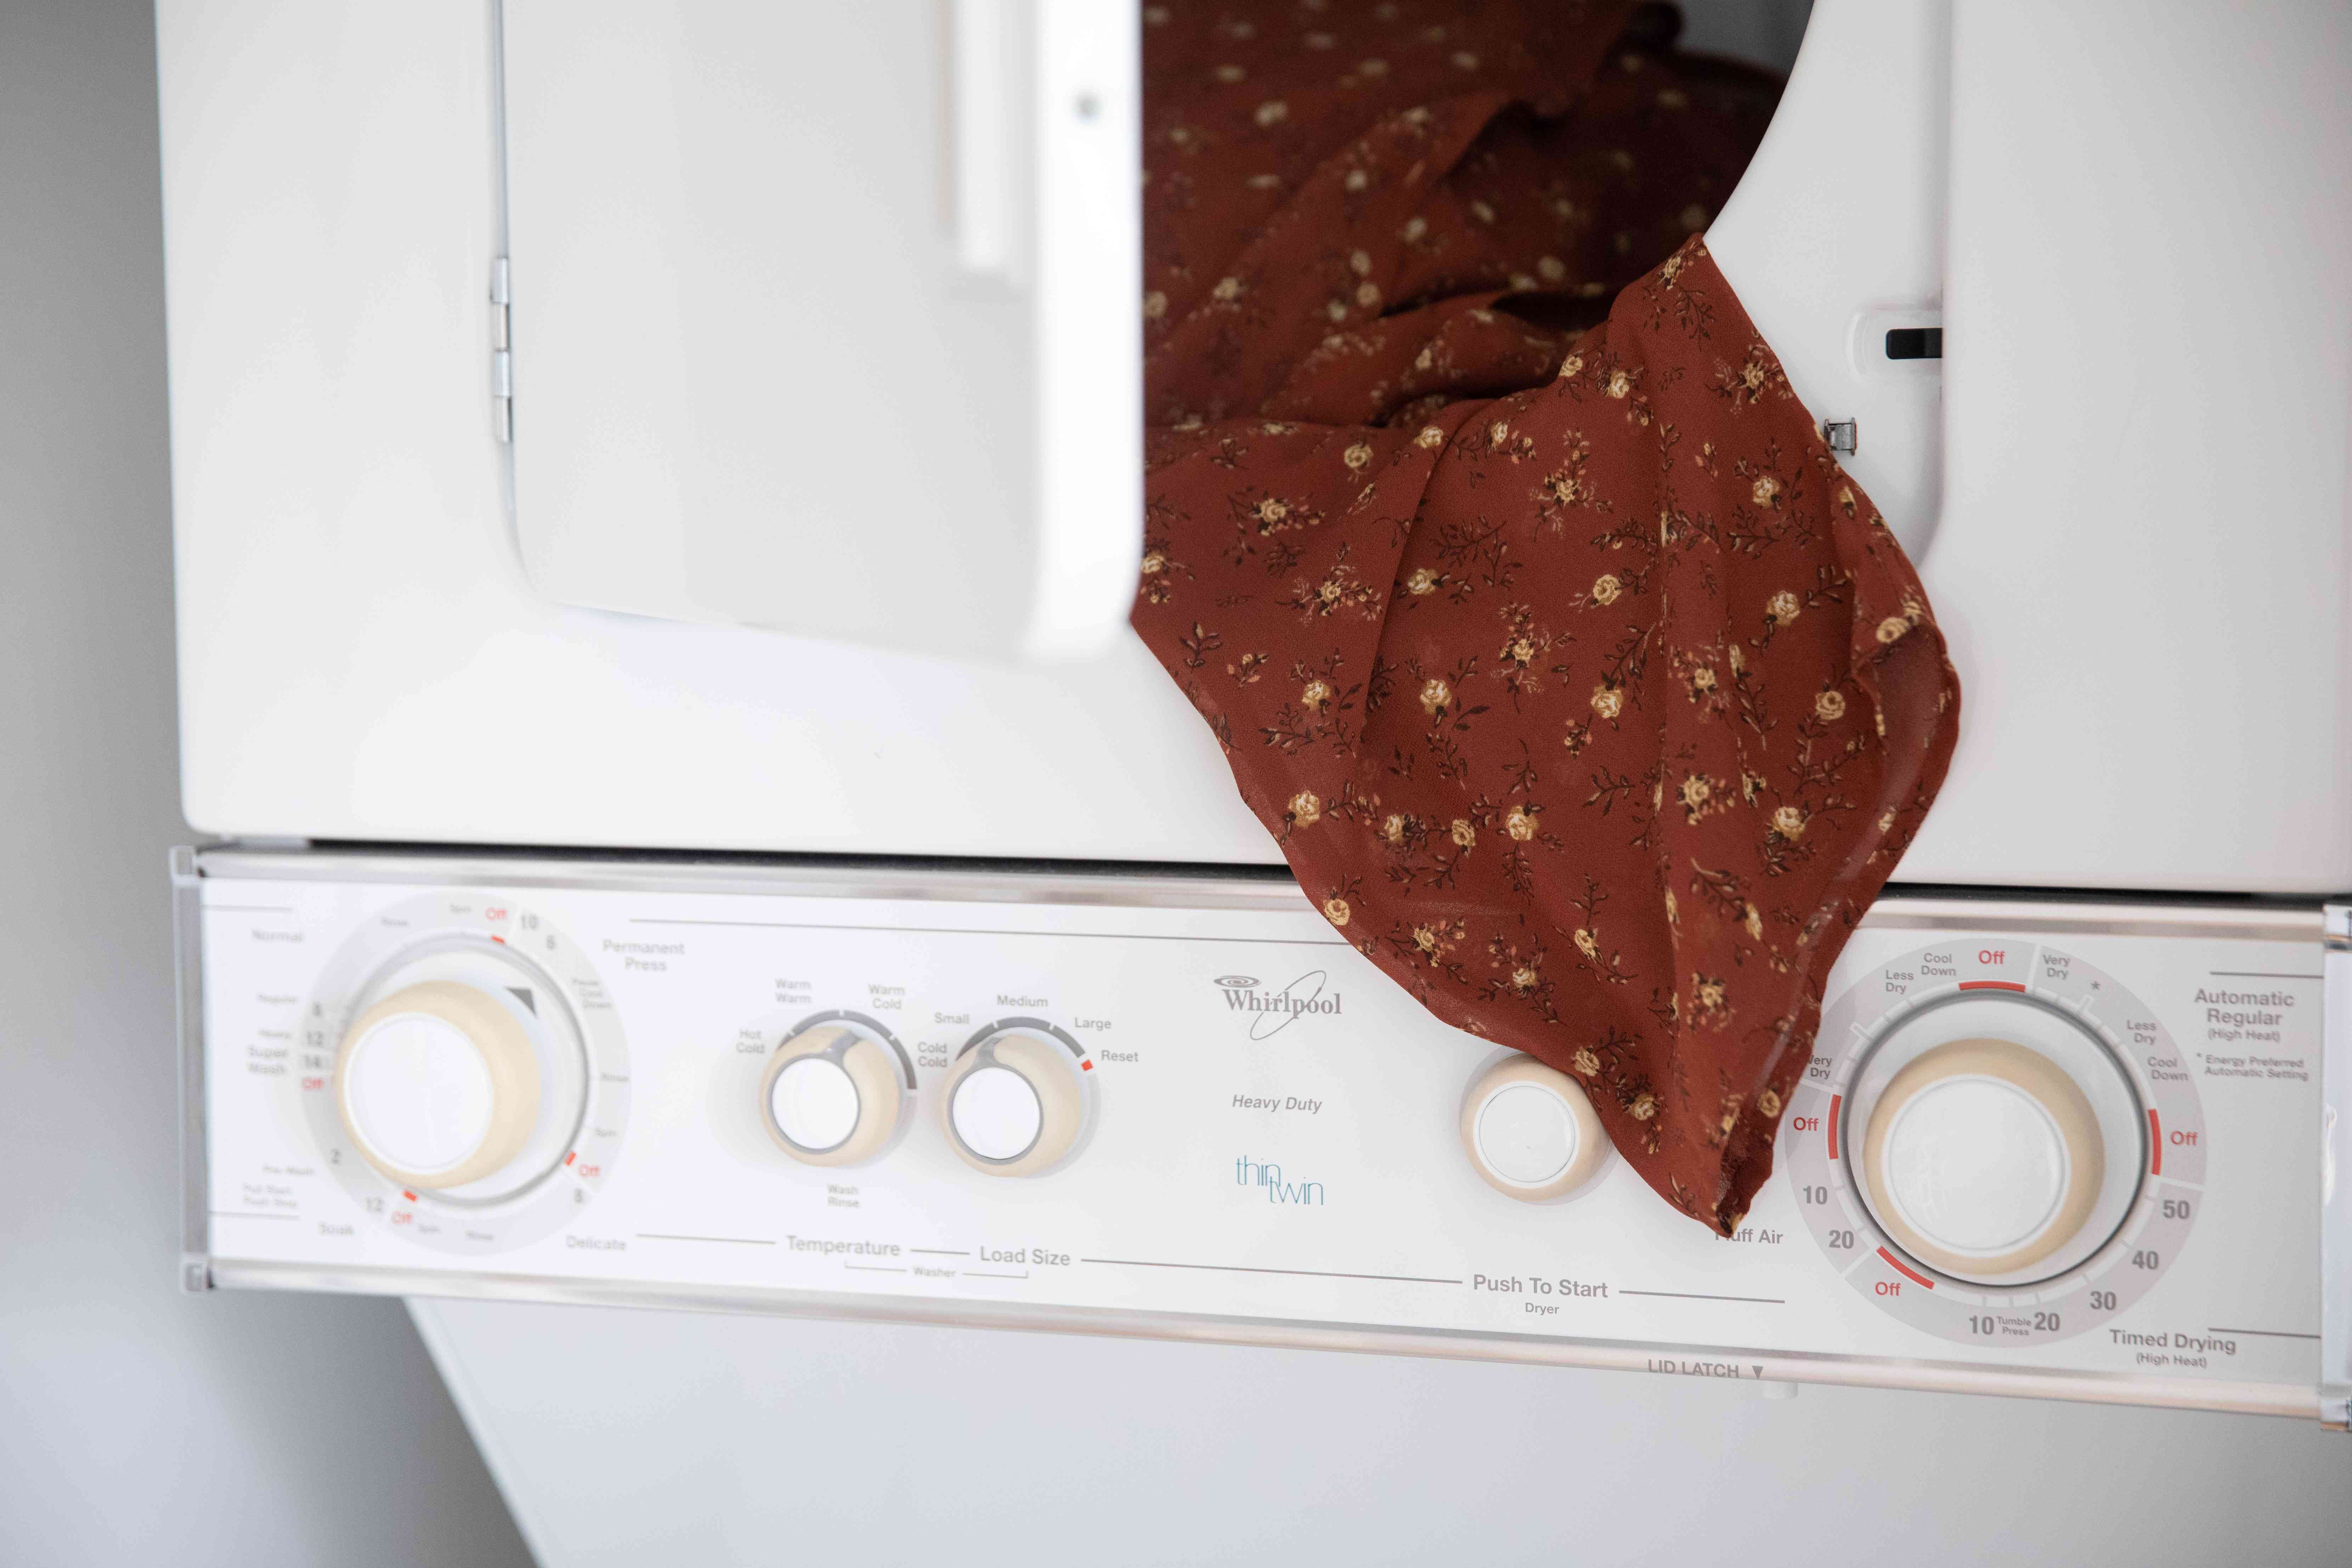 A polyester top in the dryer